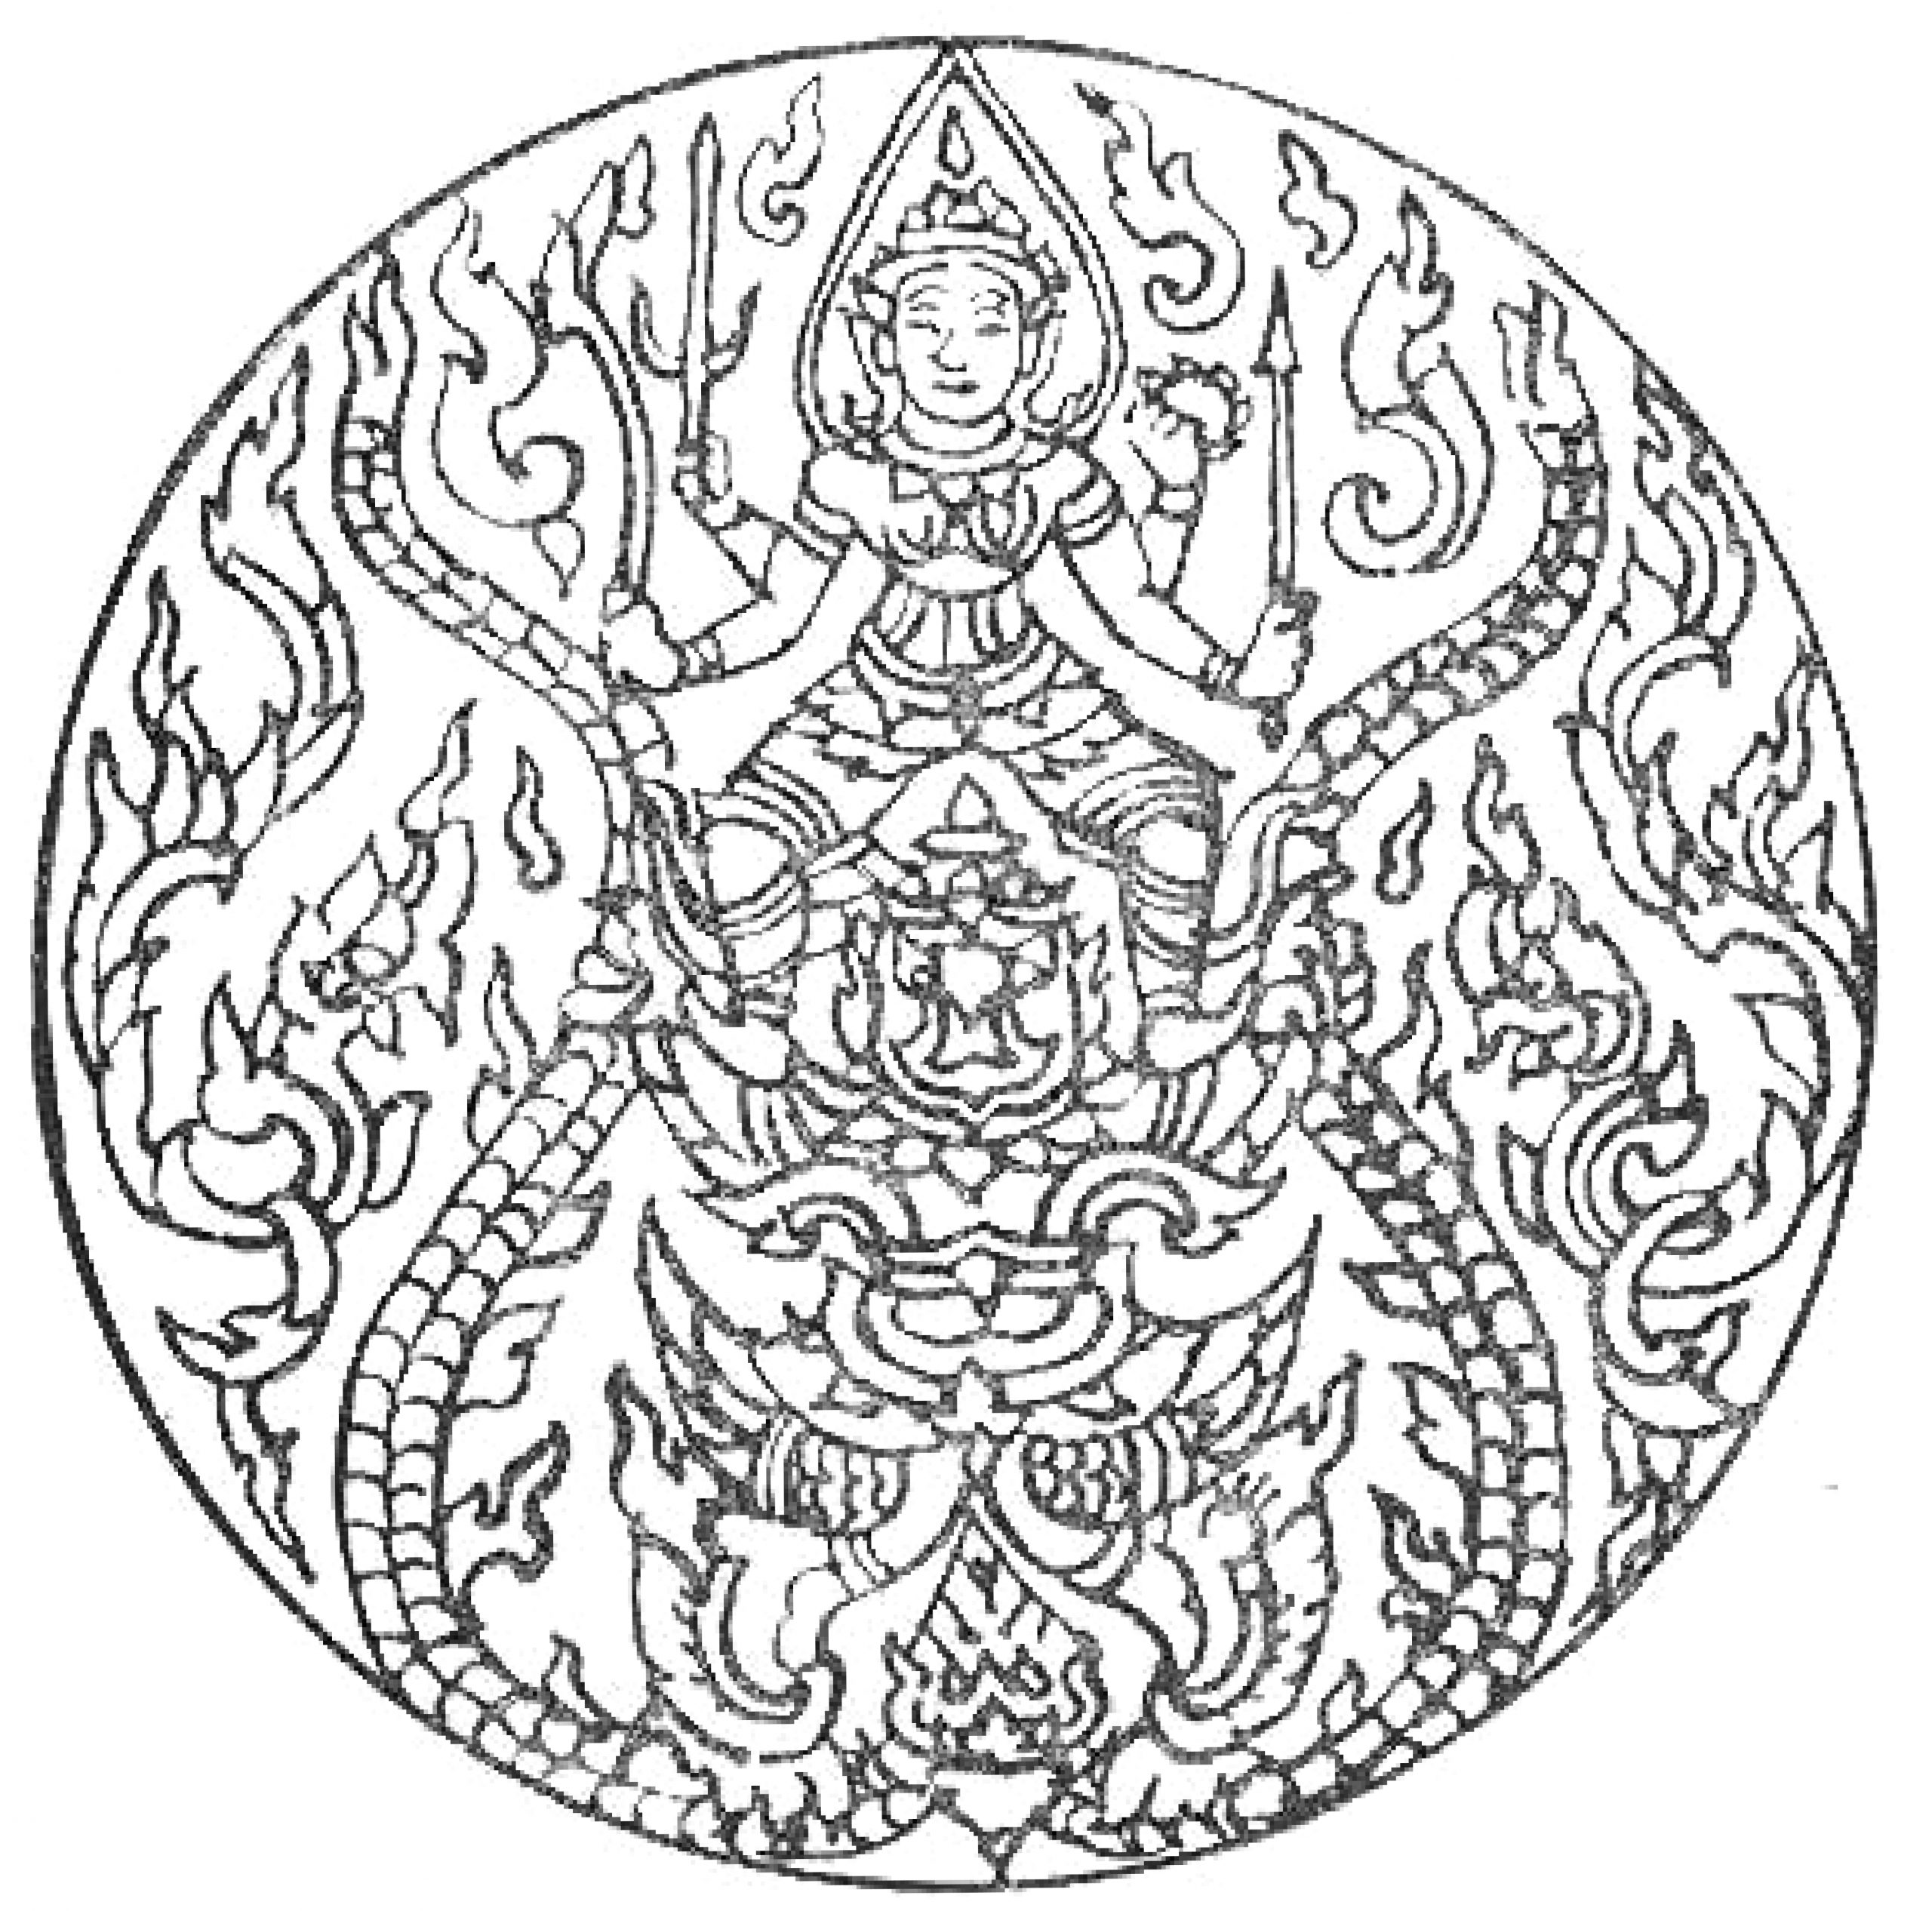 Mandala Coloring Pages to Print for Free Free Printable Mandala Coloring Pages for Adults Best